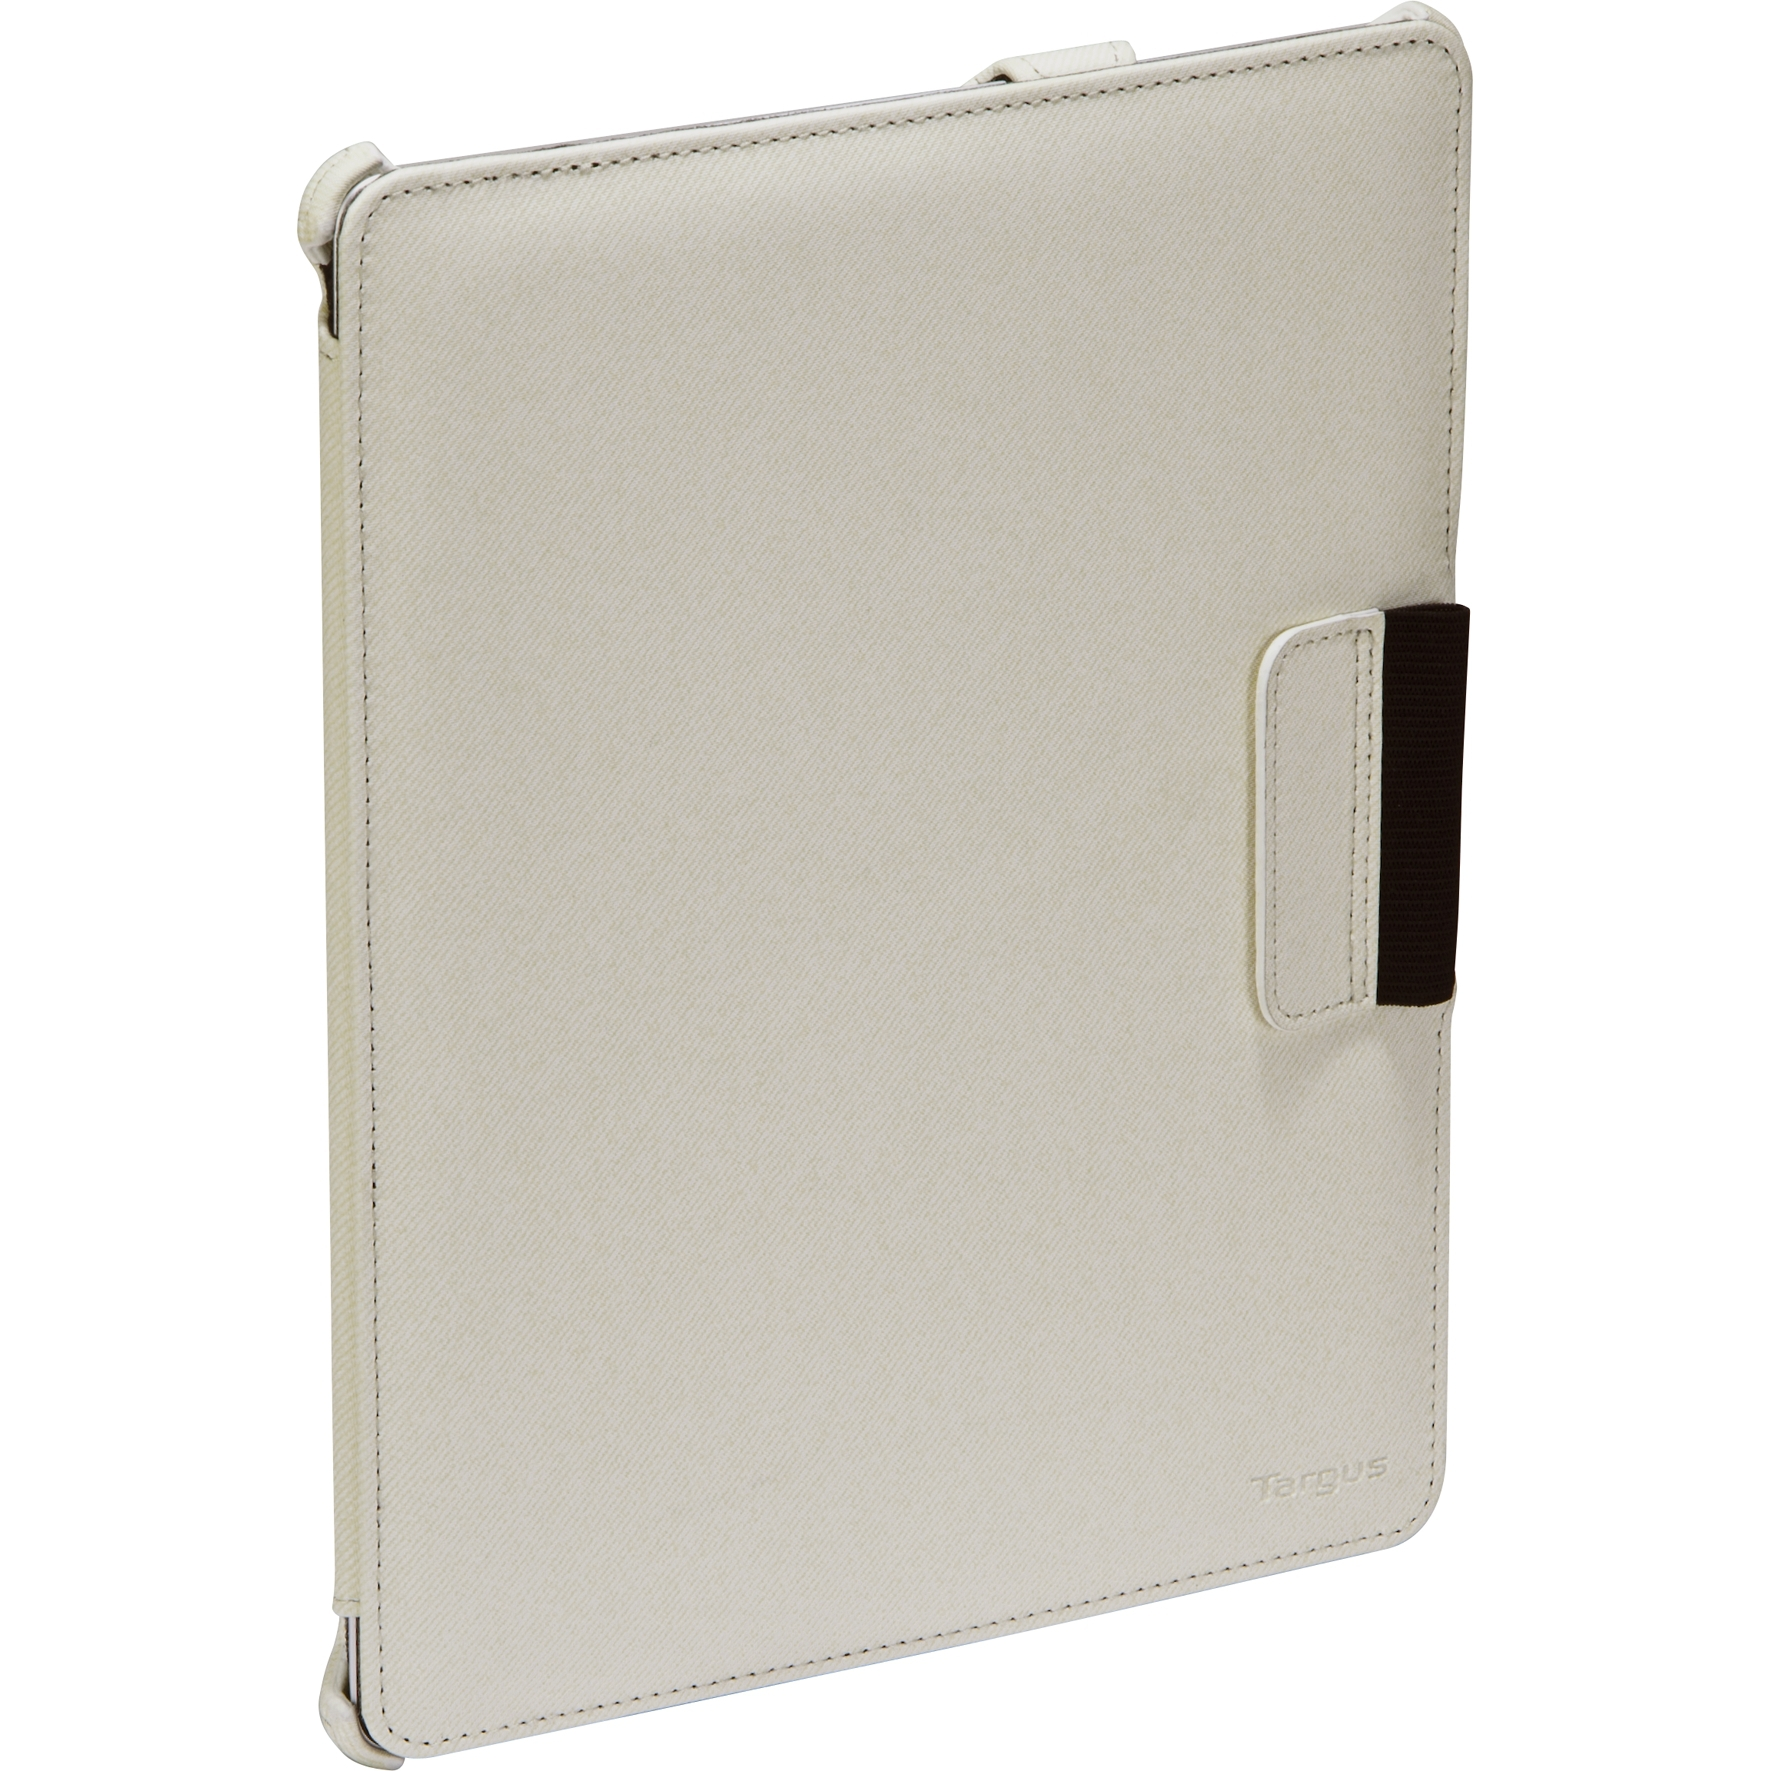 VUSCAPE WHITE PROTECTIVE COVER AND STAND FOR IPAD3 9.7IN